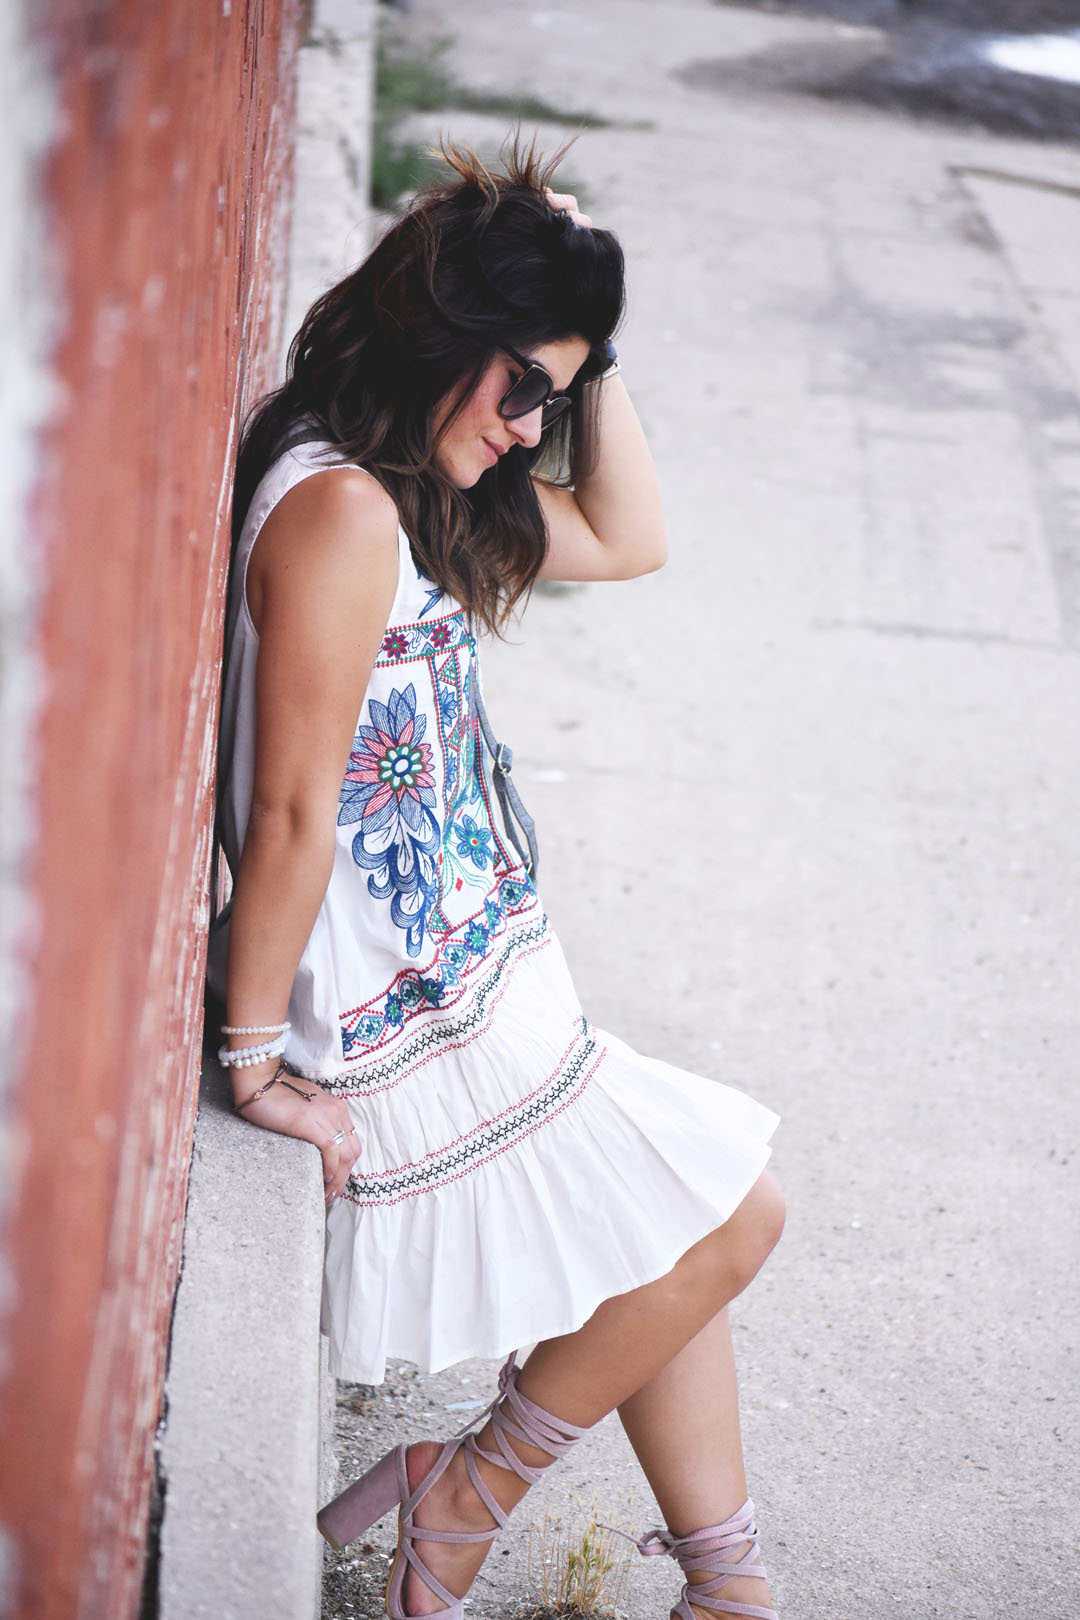 Carolina Hellal of the fashion blog Chic Talk wearing a Chicwish dress with floral embroidery and aztec details